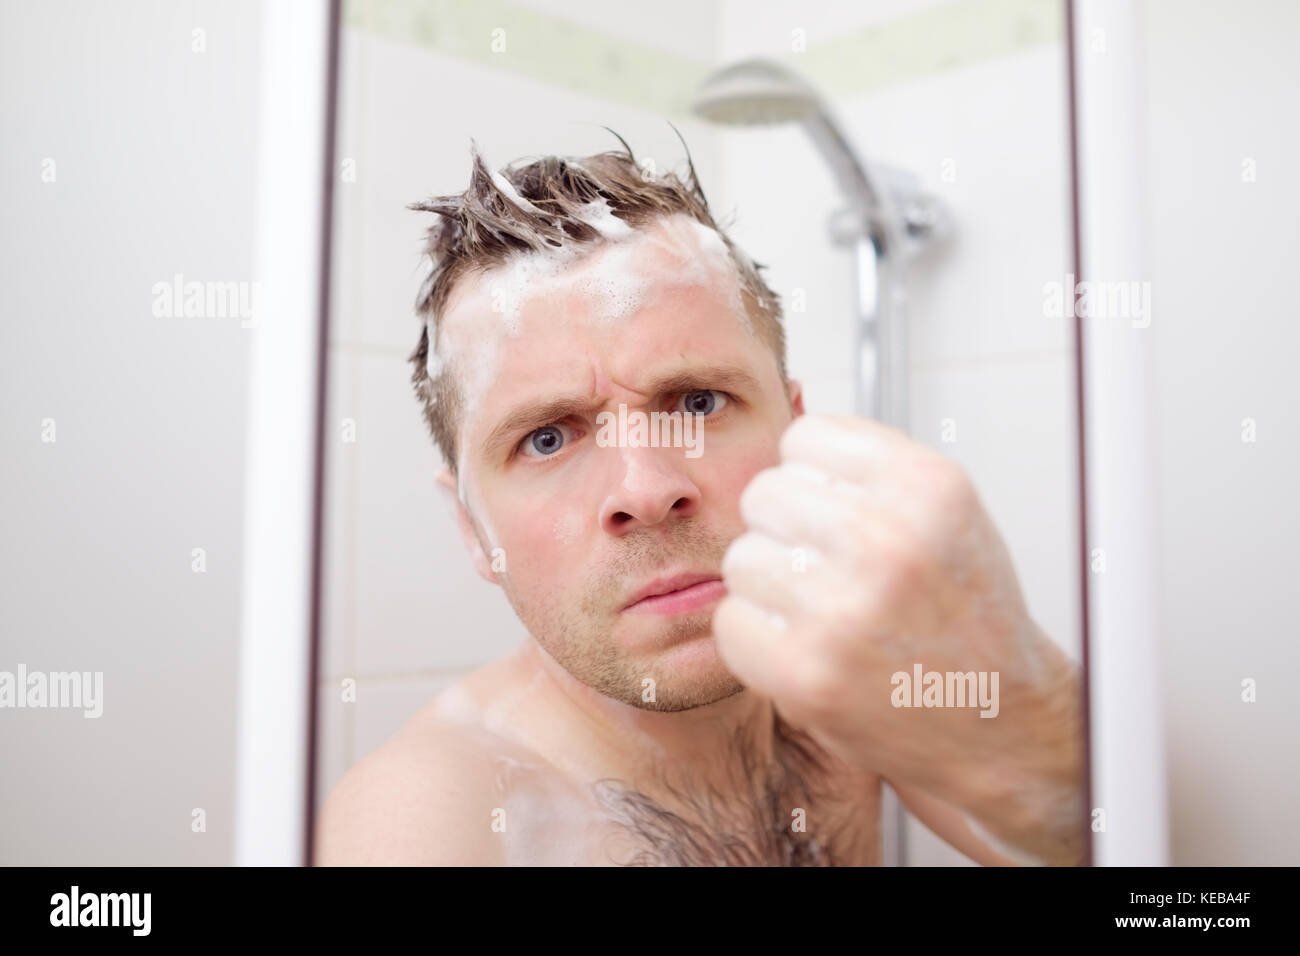 An angry man is showing a fist. He takes a shower and tries to protect his private space. - Stock Image